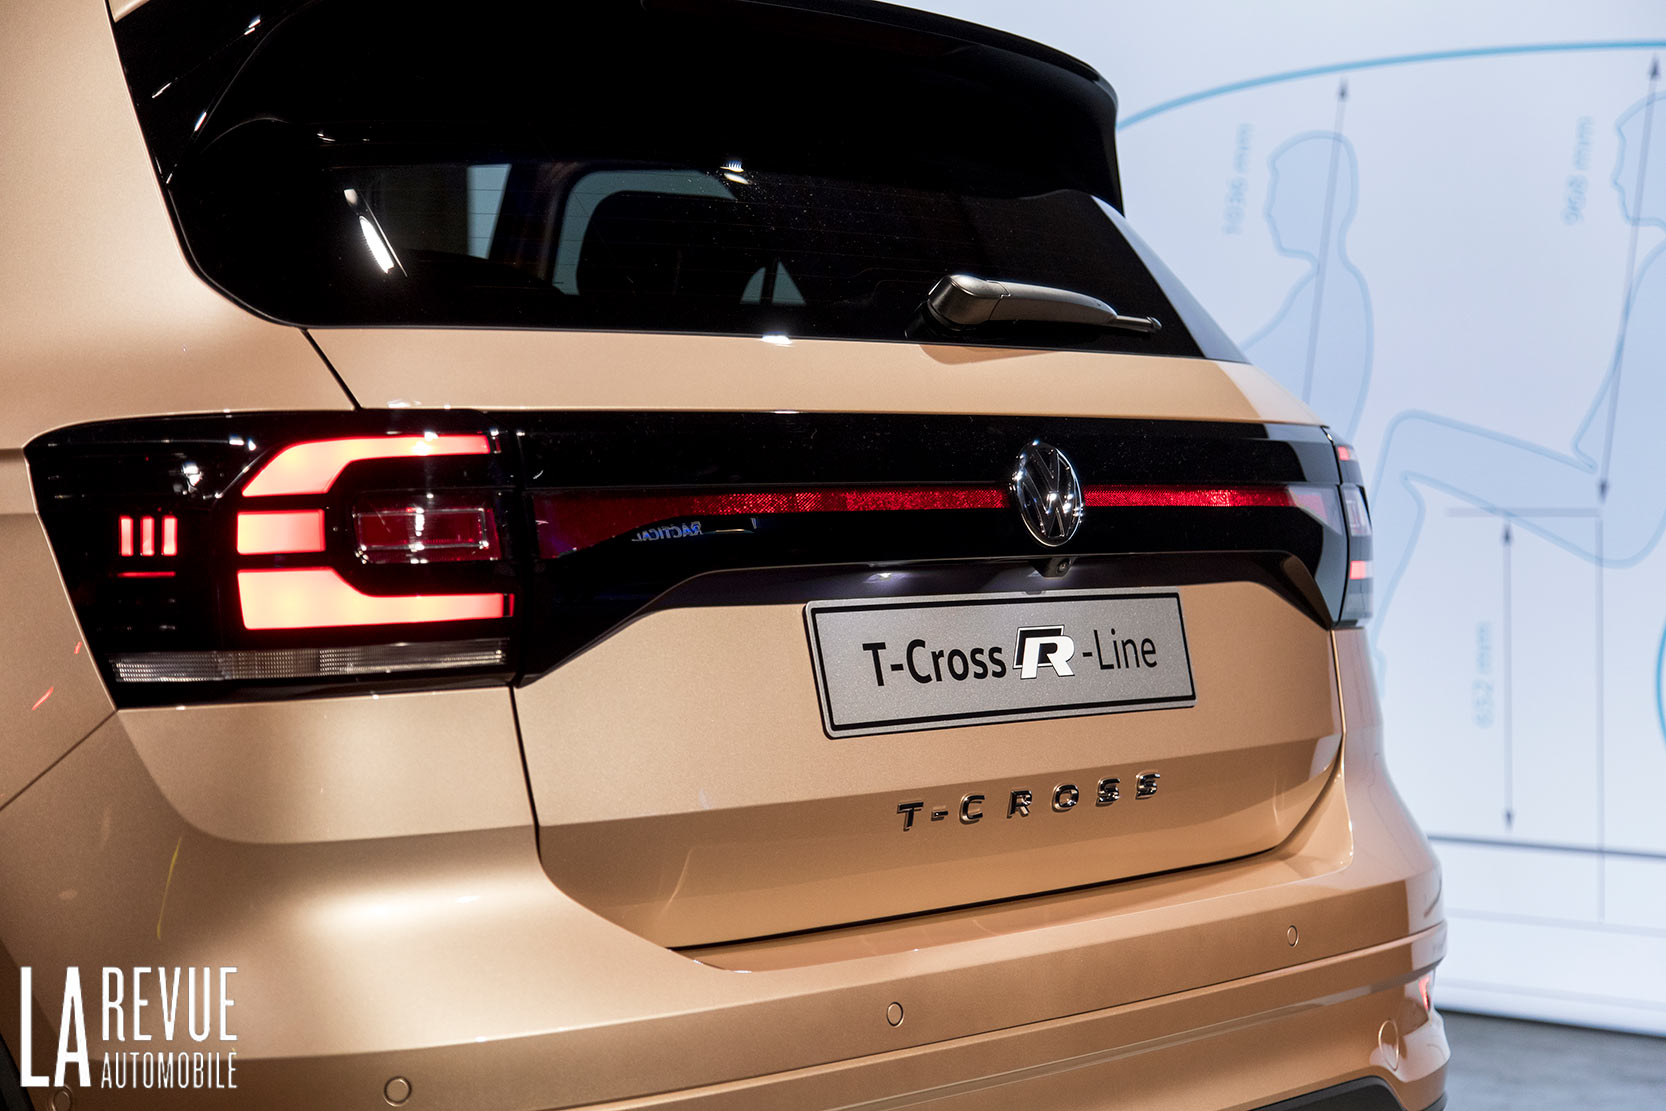 Exterieur_Volkswagen-T-Cross-Reveal_4